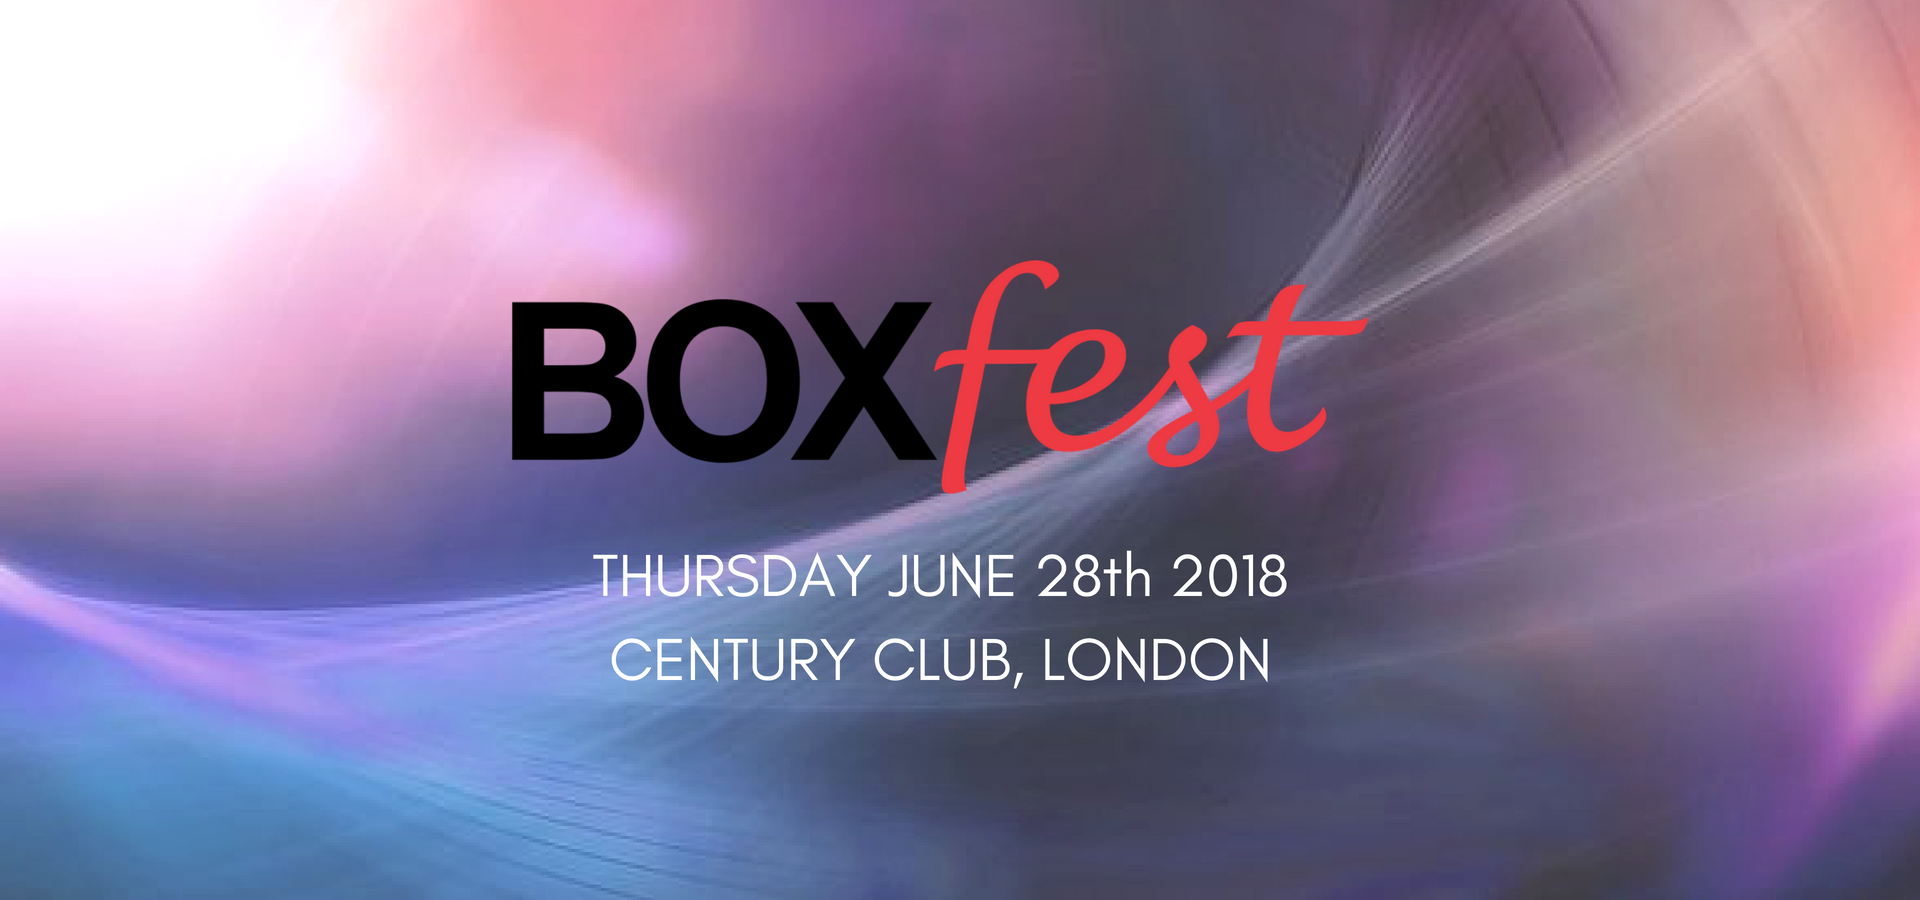 THURSDAY-JUNE-28th-2018CENTURY-CLUB-LONDON